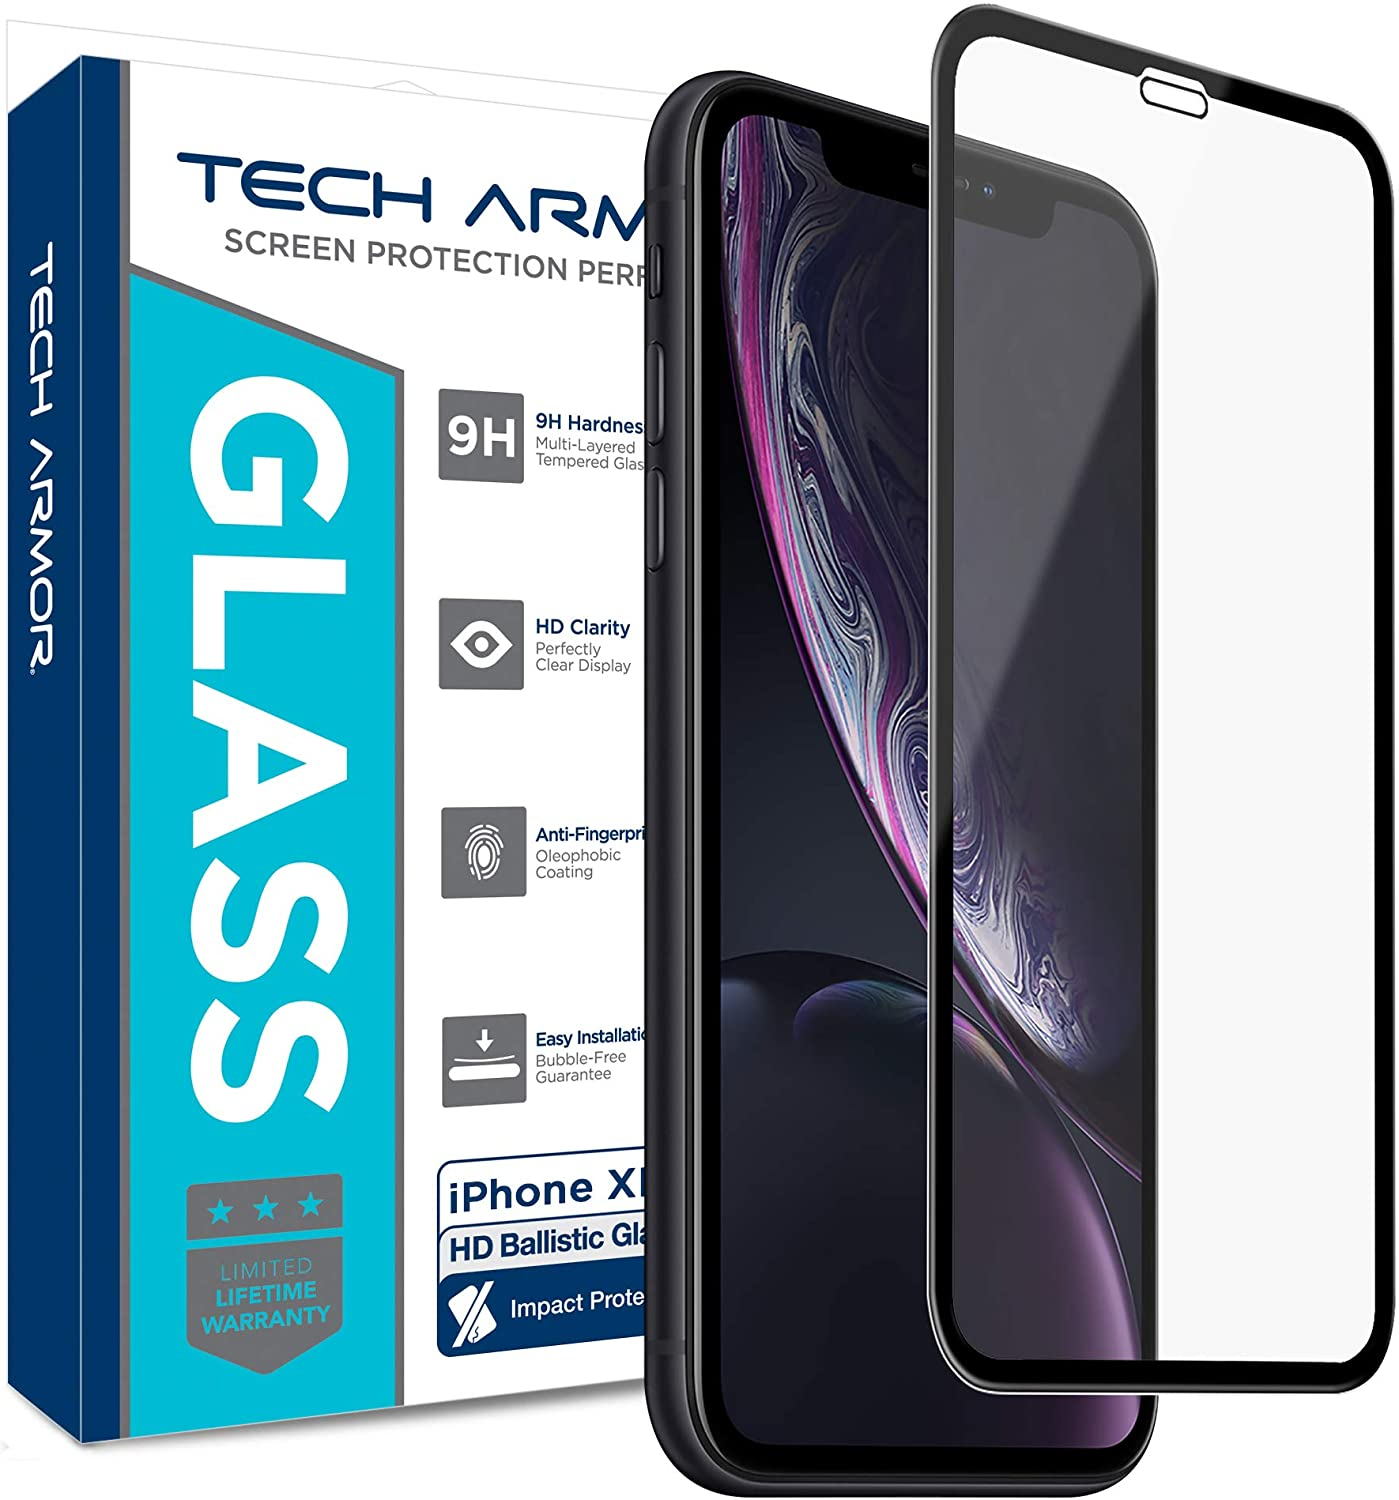 Tech Armor Edge to Edge Glass Screen Protector for New 2019 Apple iPhone 11 / iPhone Xr - Case-Friendly, Scratch Resistant, Haptic Touch Accurate (Black) [1-Pack]